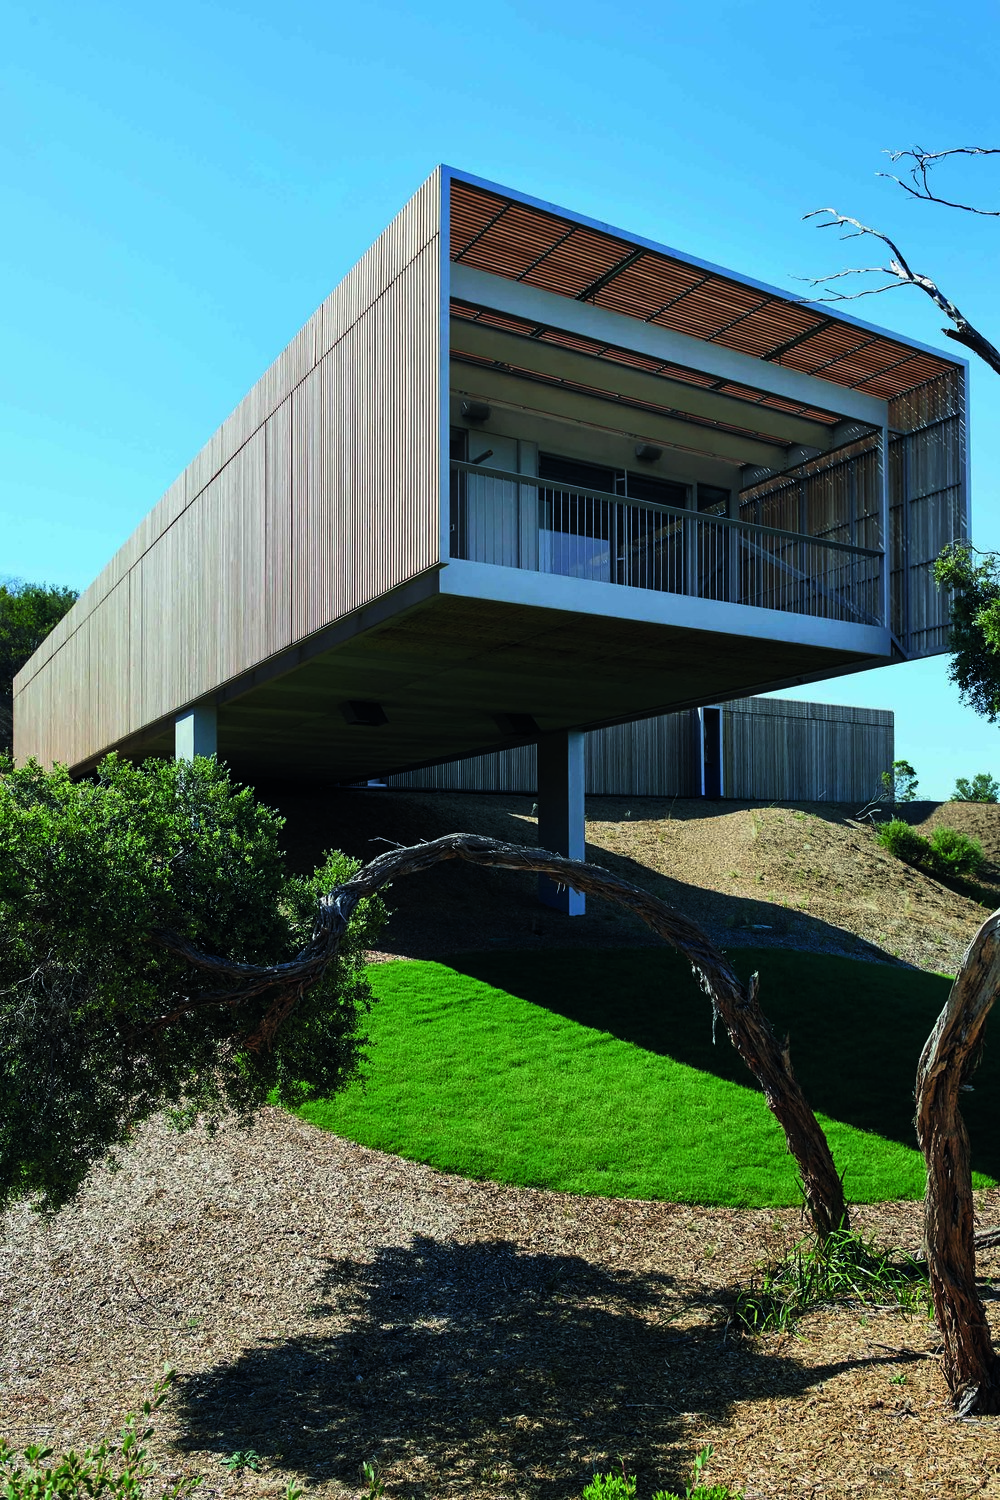 House on the Coast, by Sean Godsell Architects, has won the Robin Boyd Award for Houses (New) at the Australian Institute of Architects' Australian Architecture Awards. Photos courtesy the Australian Institute of Architects/Sean Godsell Architects/Young and Percival/Earl Carter